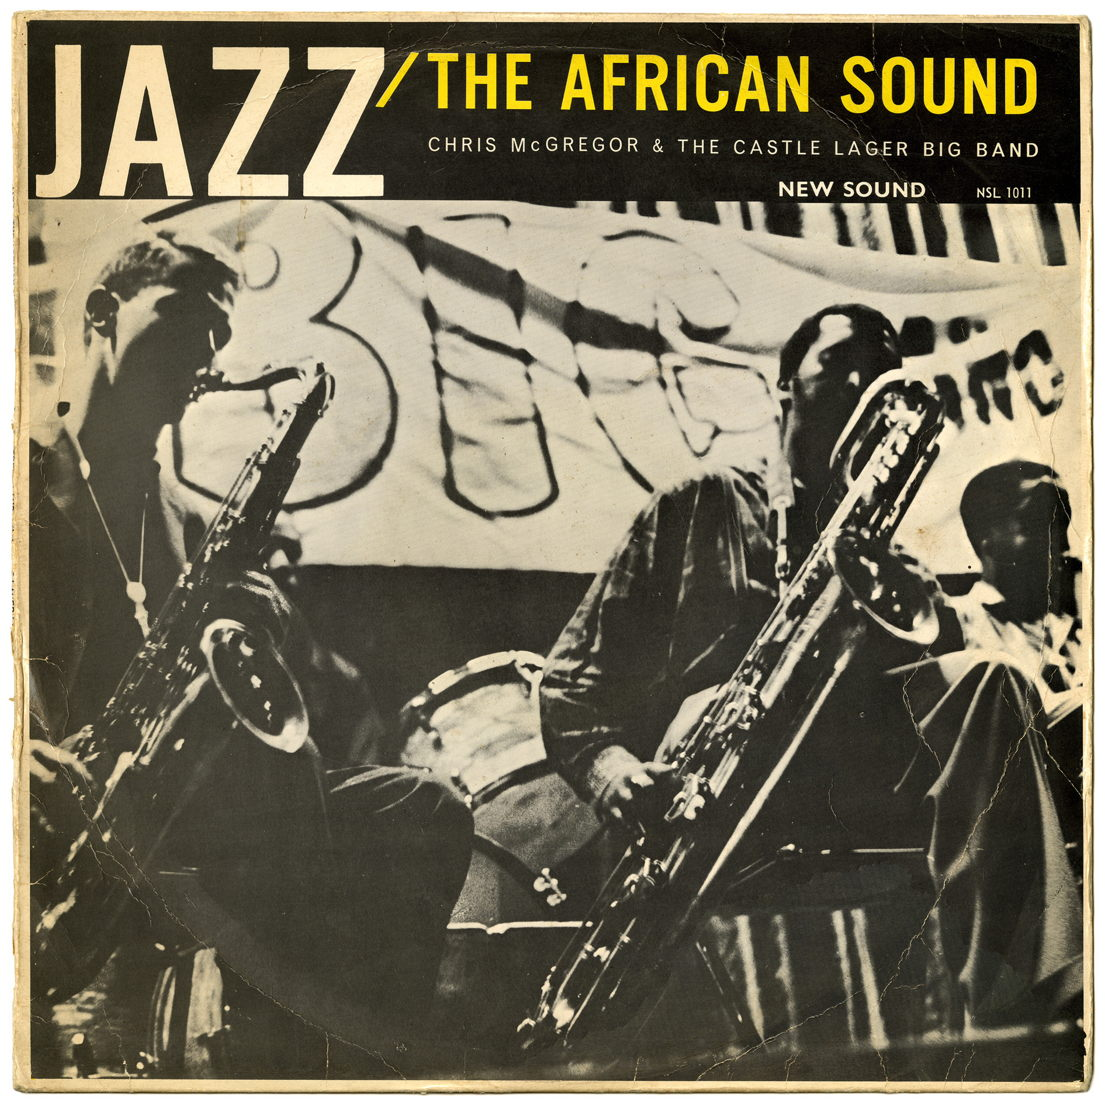 SEPTEMBERJIVE_THEAFRICANSOUND